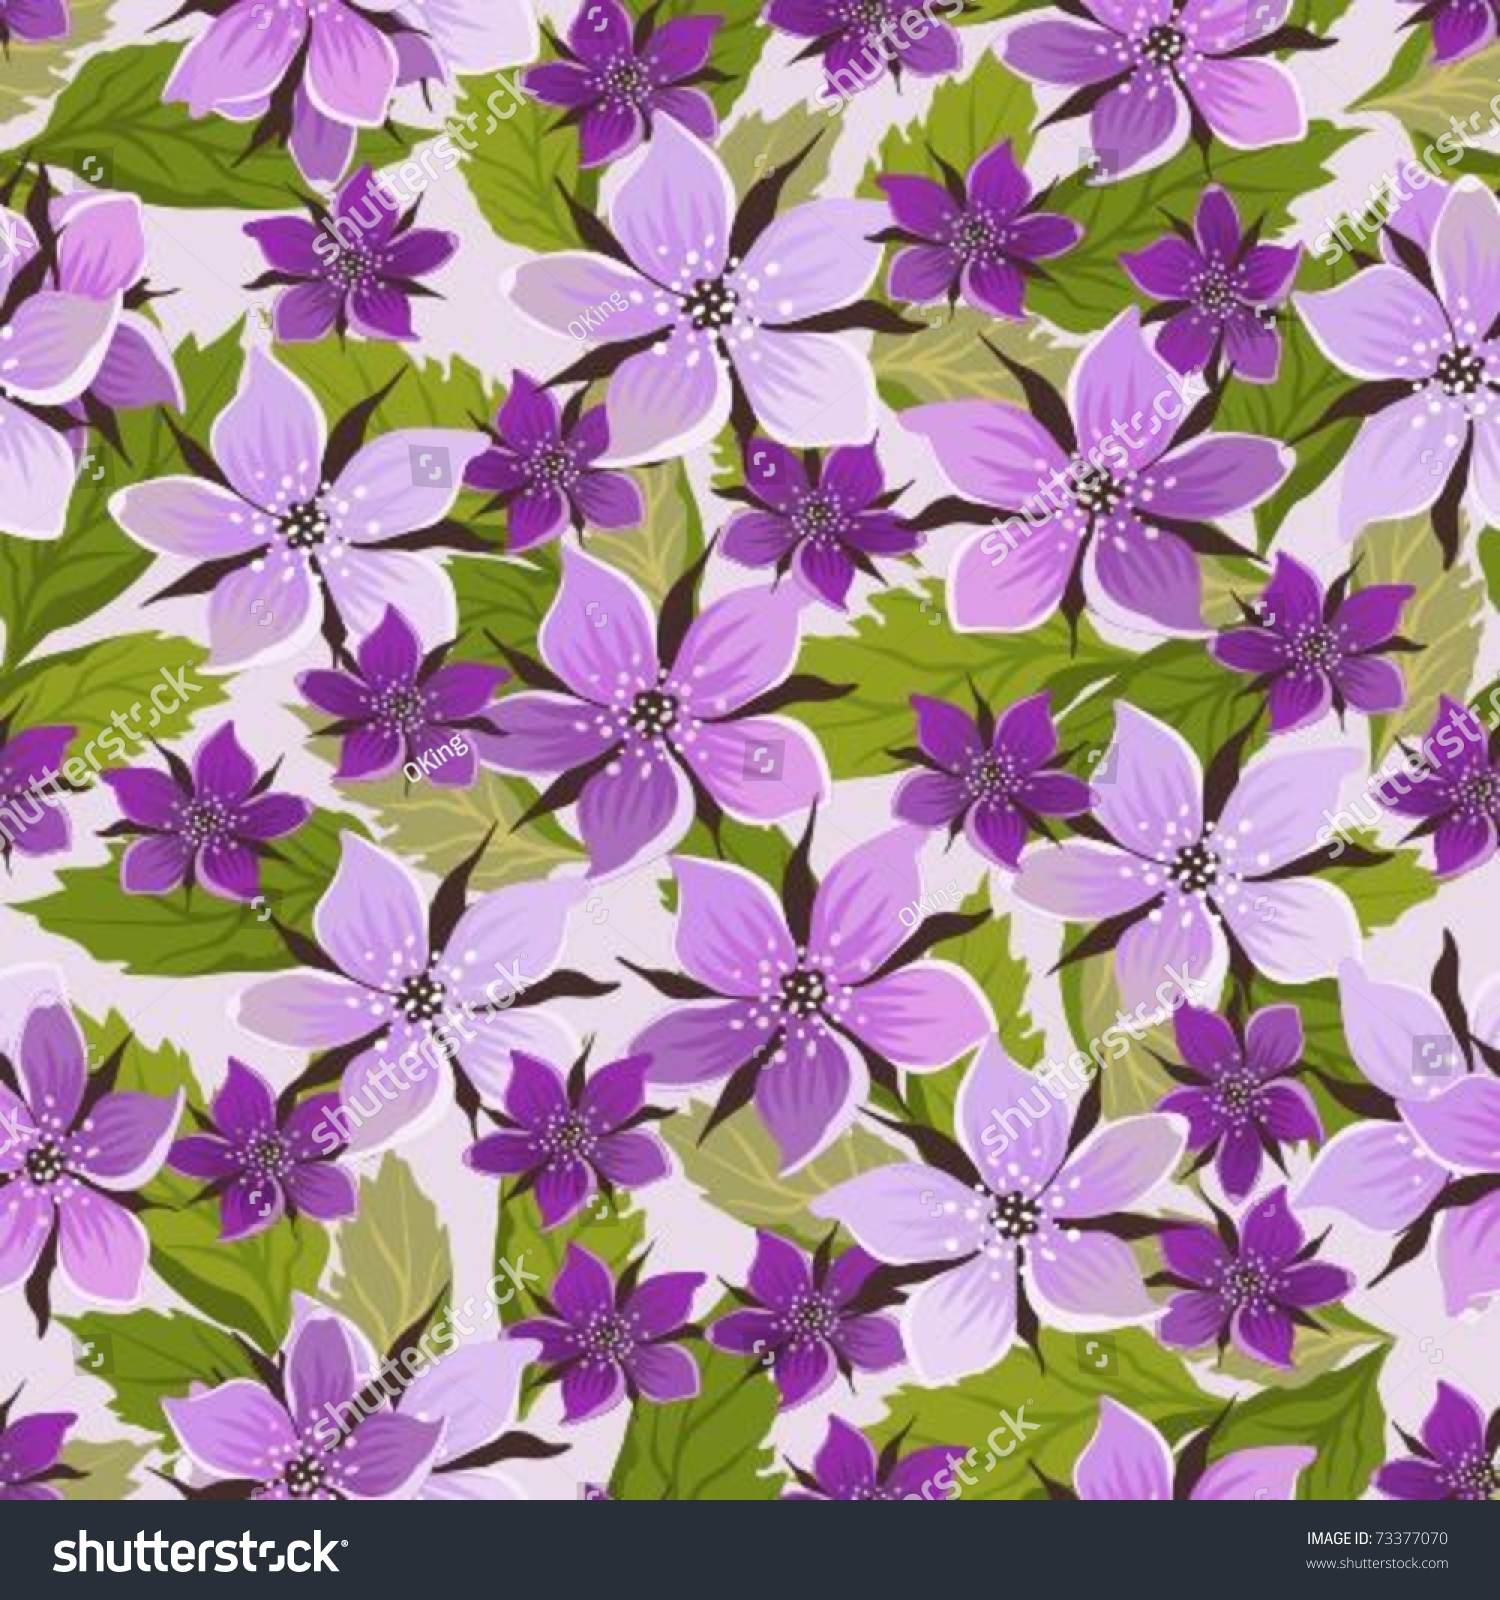 Seamless Background With Lilac Flowers And Leaflets Stock